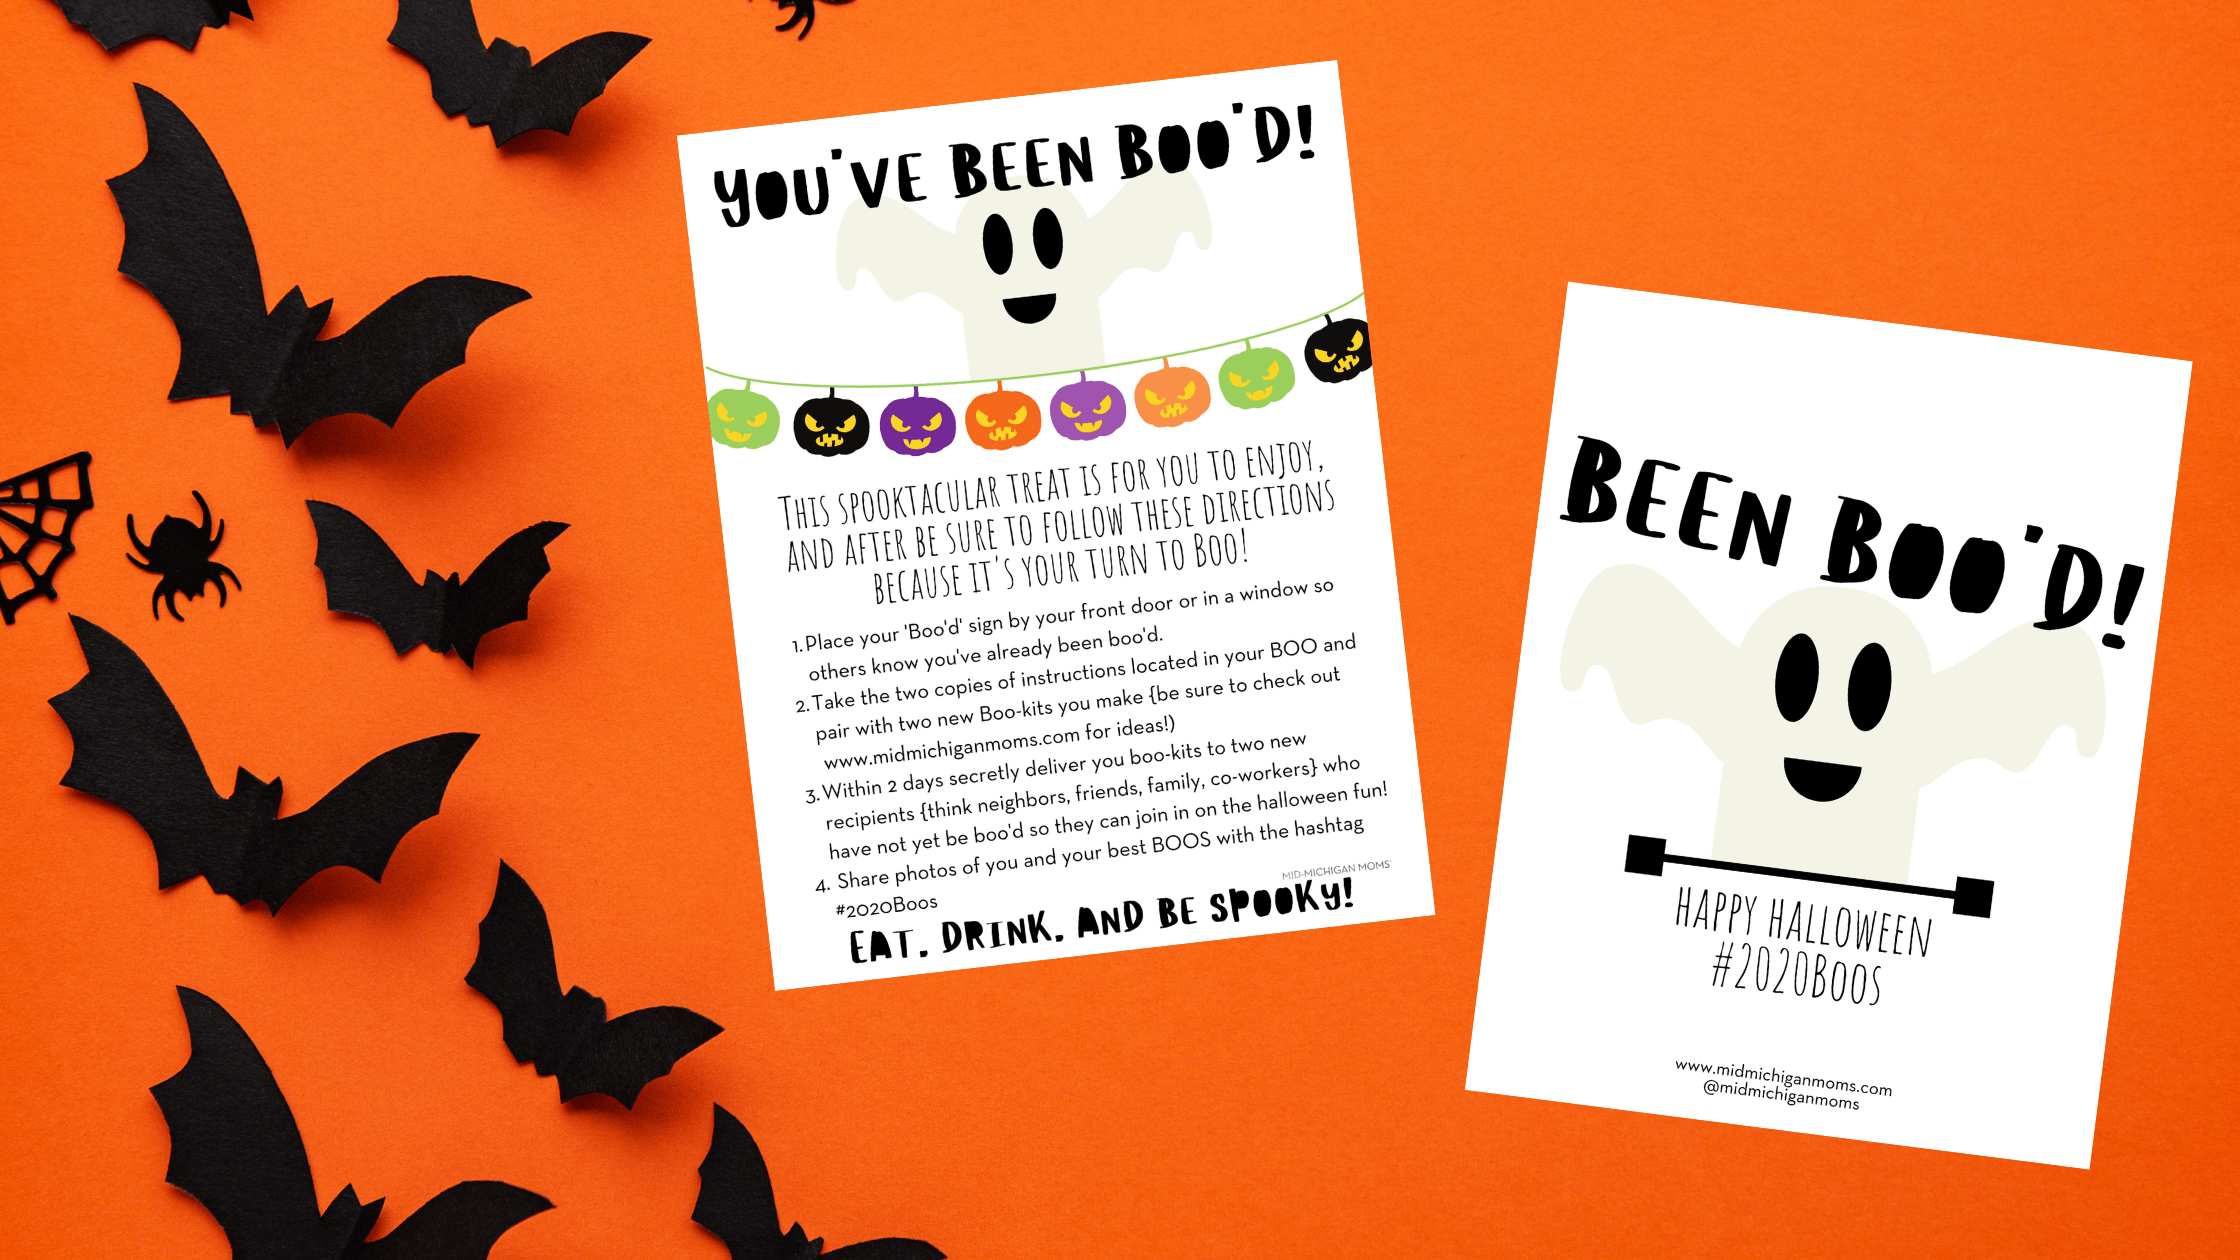 boo'd sign and instructions